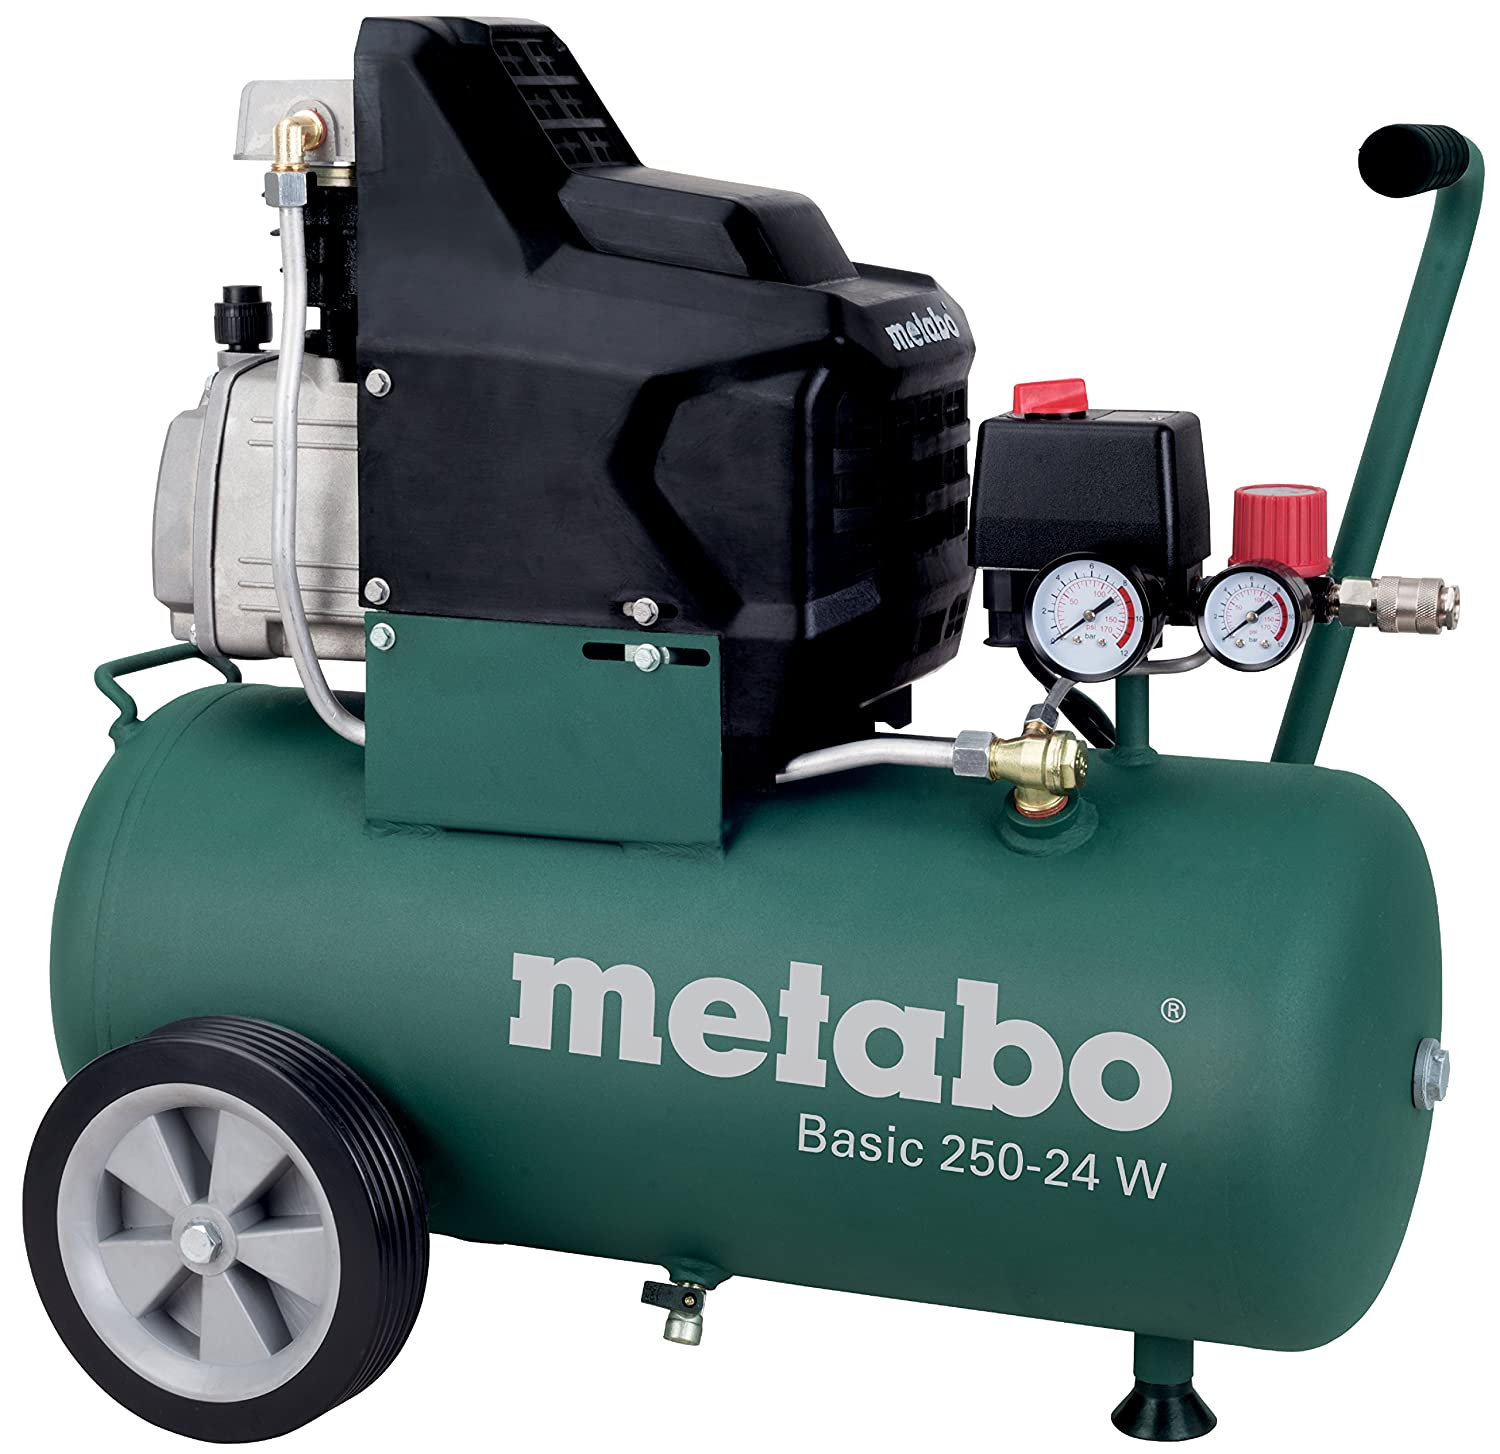 Metabo Basic 250-24 W - Compresor 2 CV 25 litros